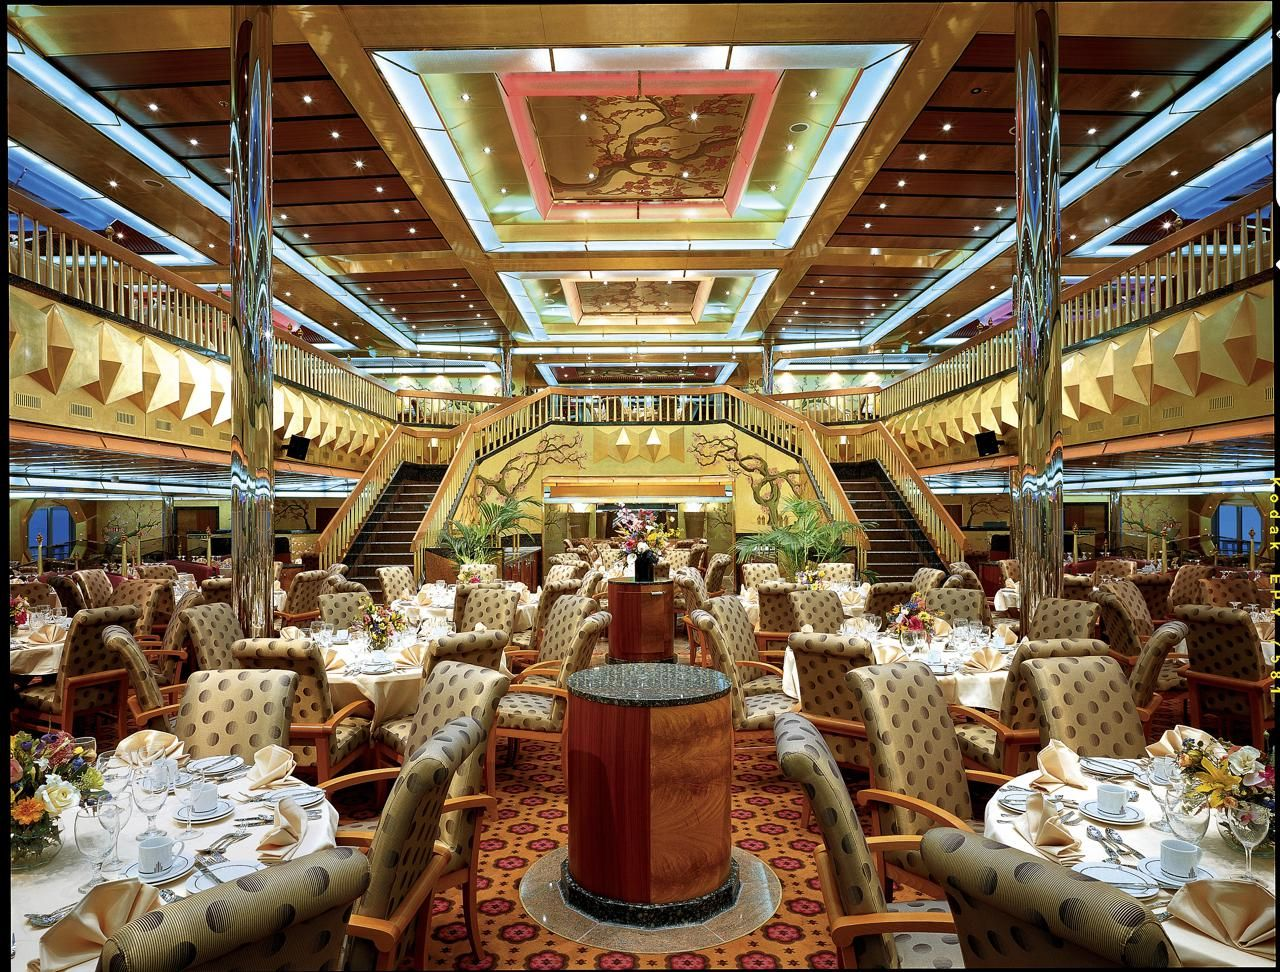 Carnival Dining Room Dress Code In, Dress Code For Dining Room On Carnival Cruise